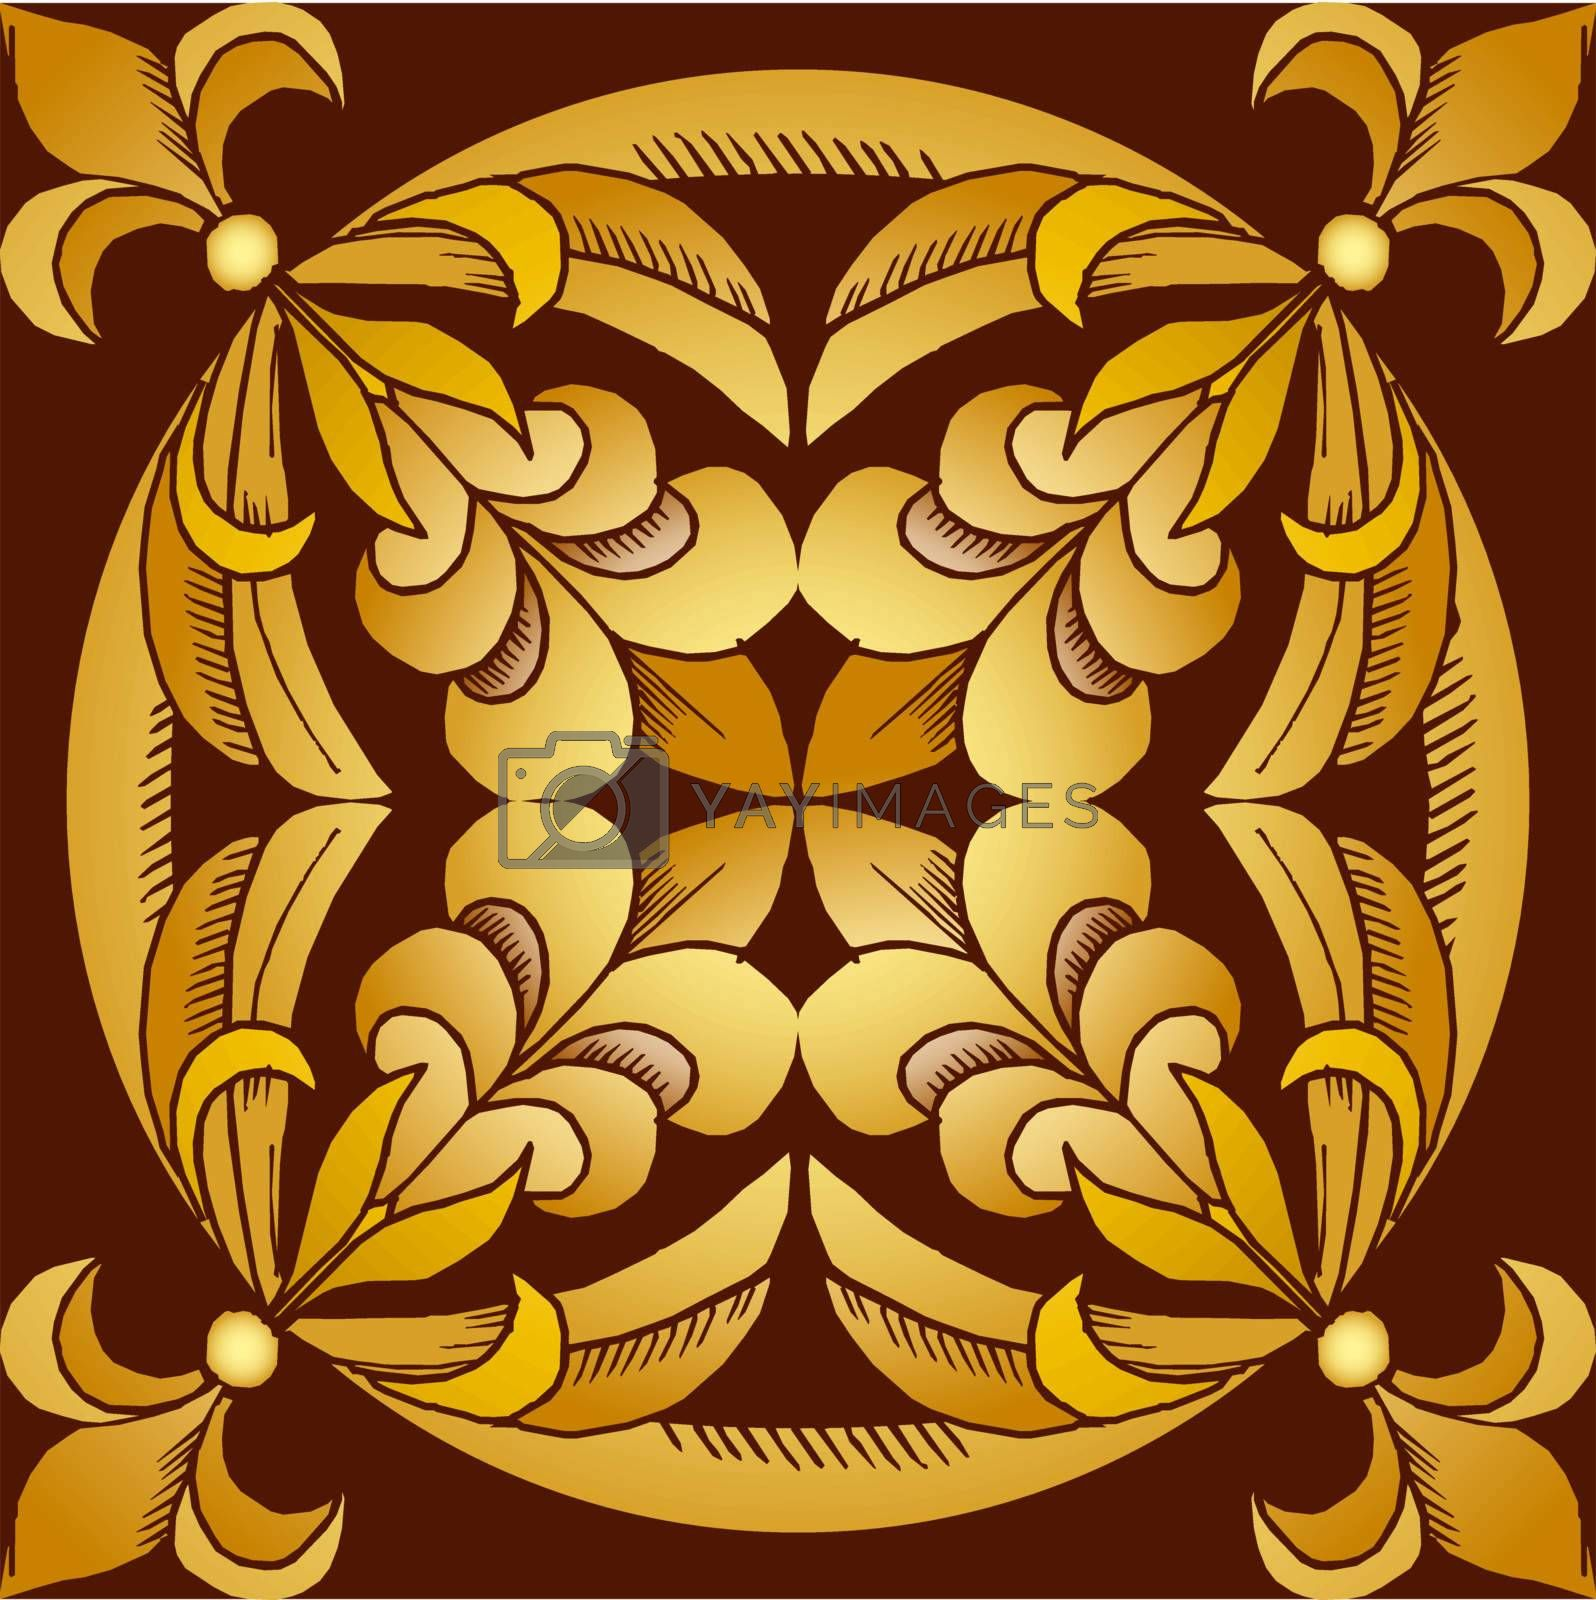 Seamless Ancient Background  EPS 10 vector file included